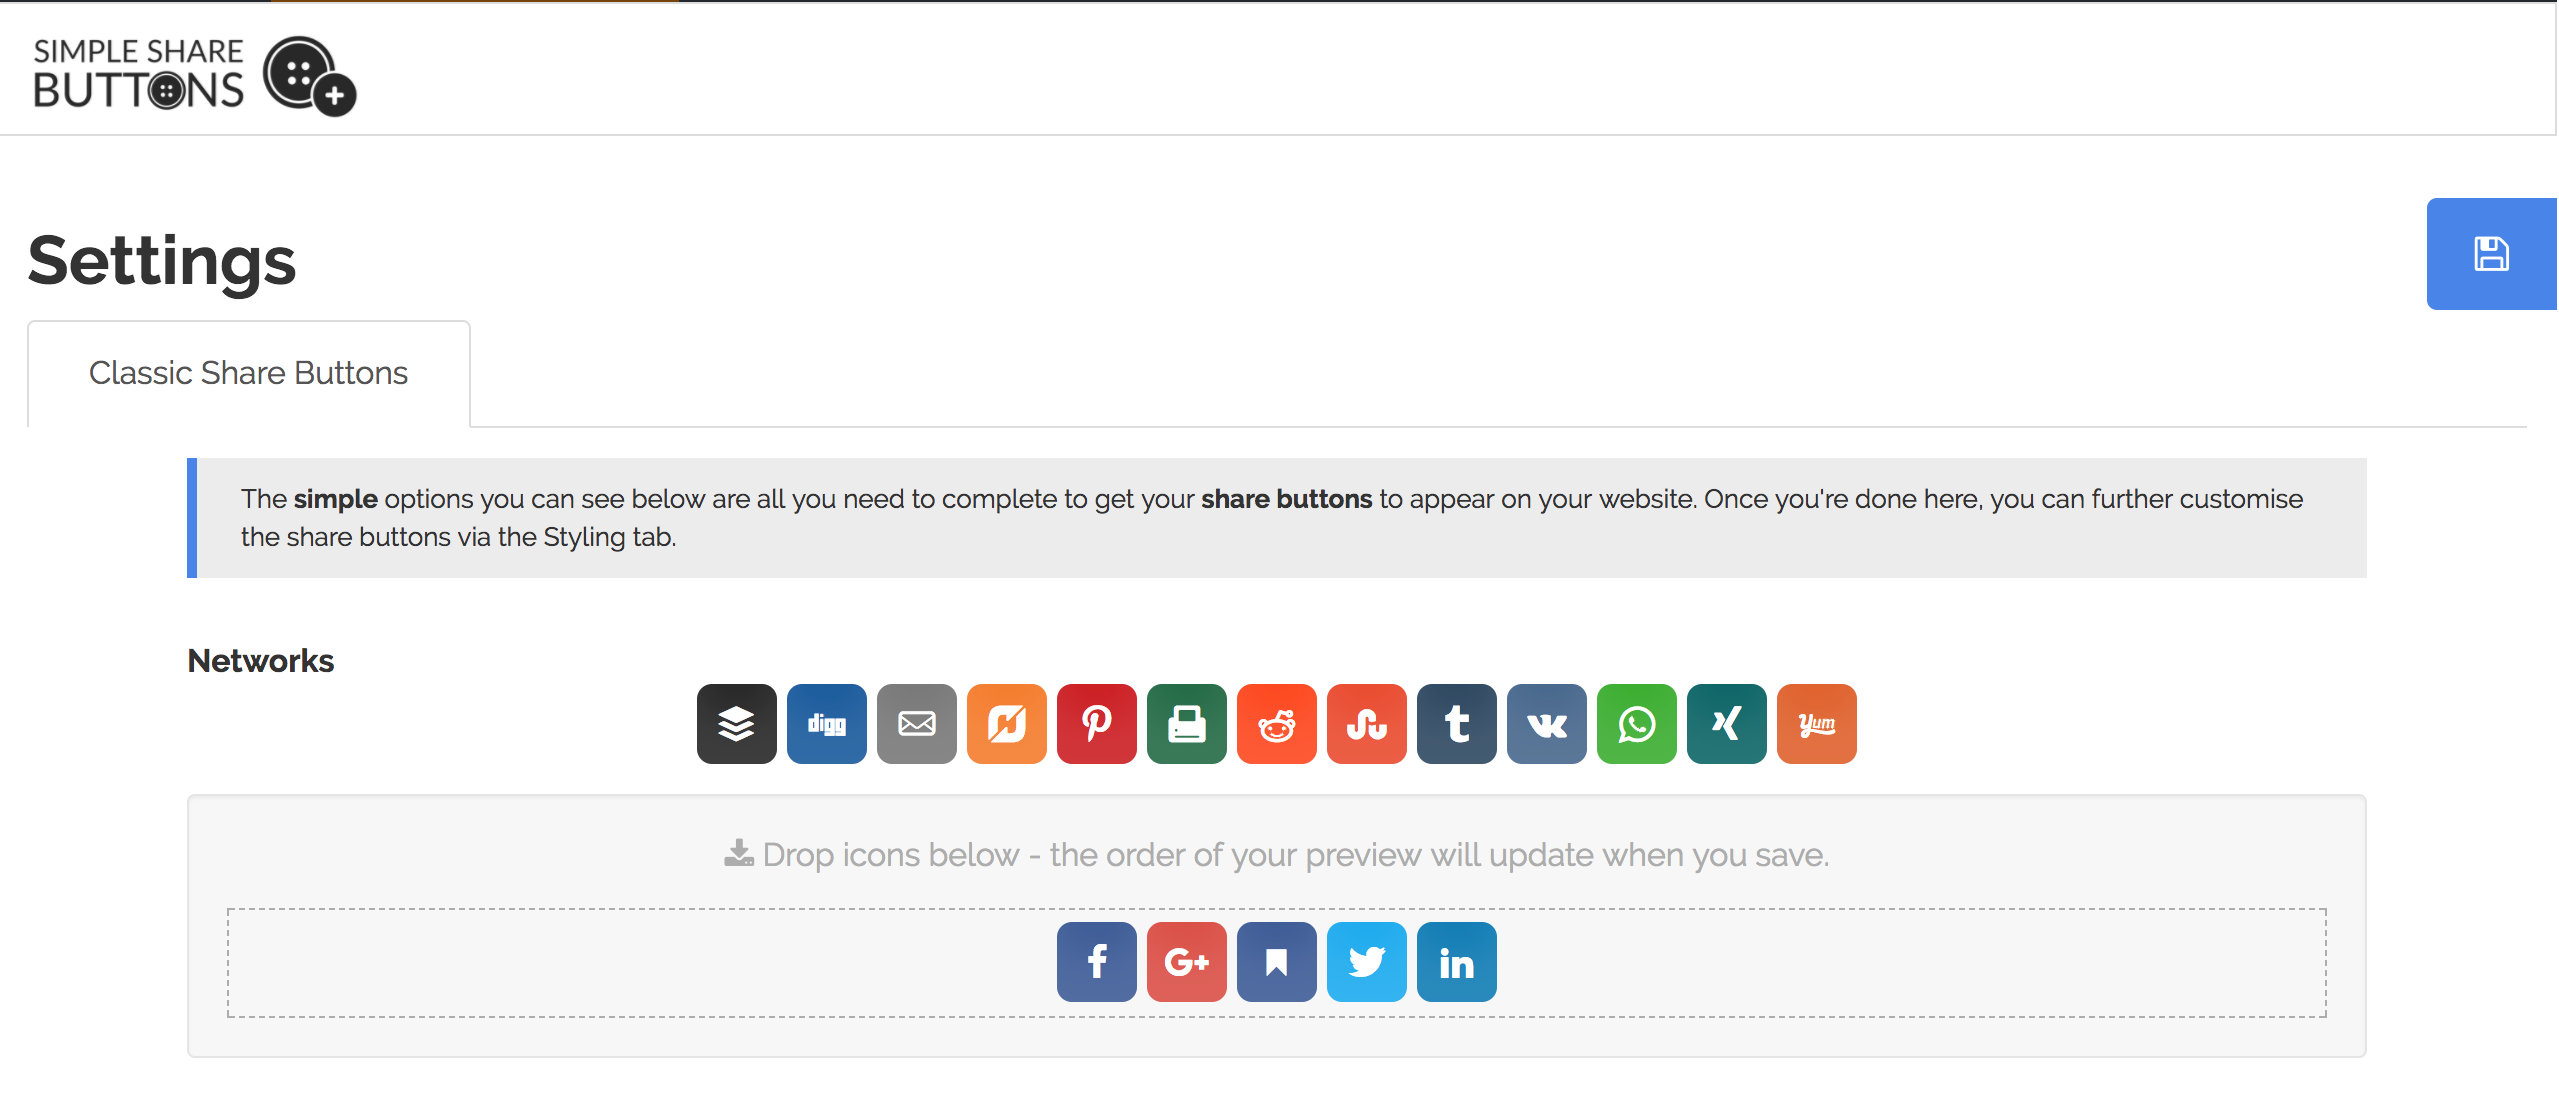 Simple Share Buttons Adder Screenshot